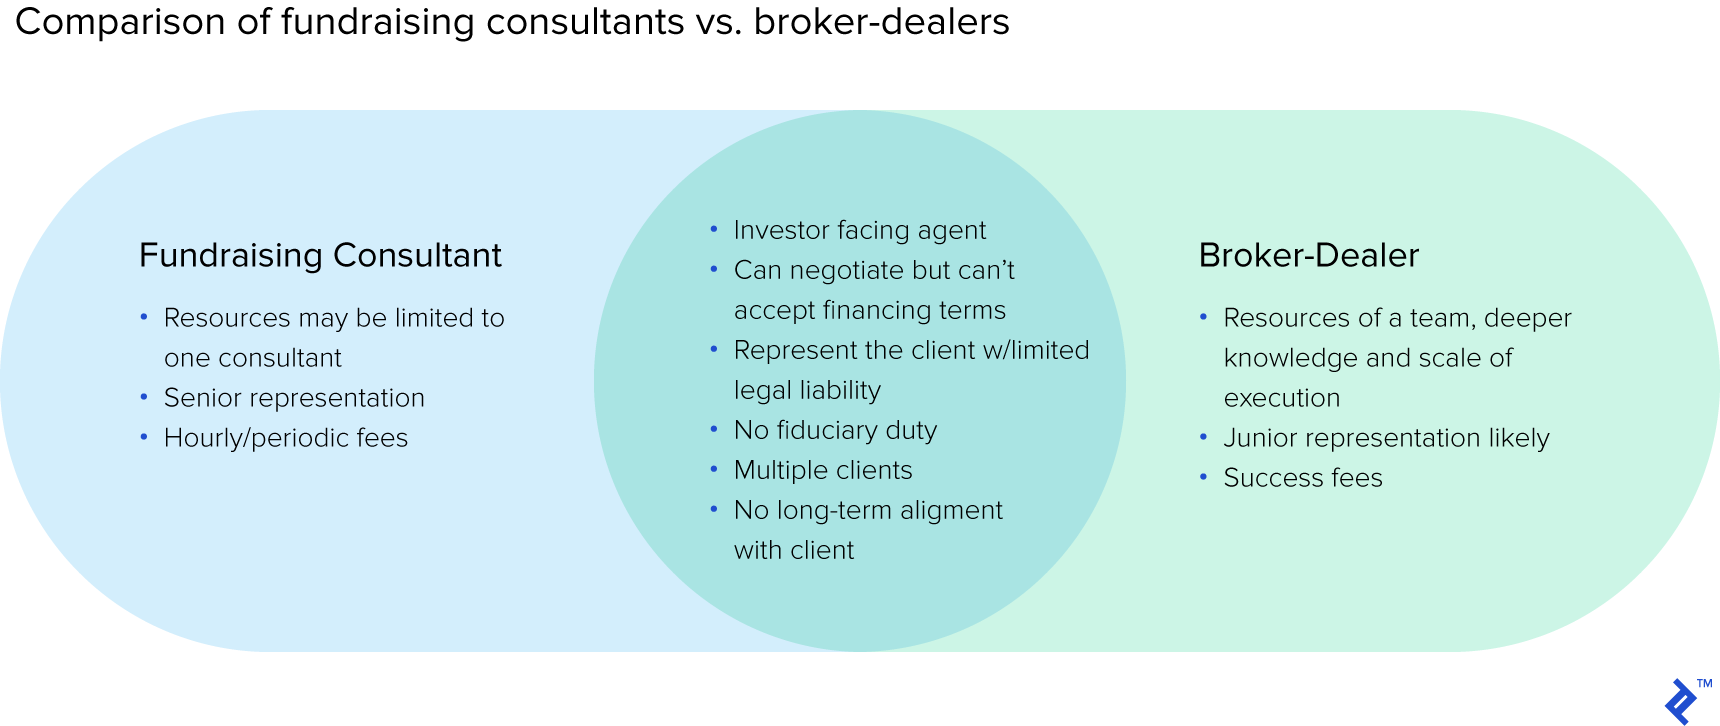 Comparison of fundraising consultants vs. broker-dealers